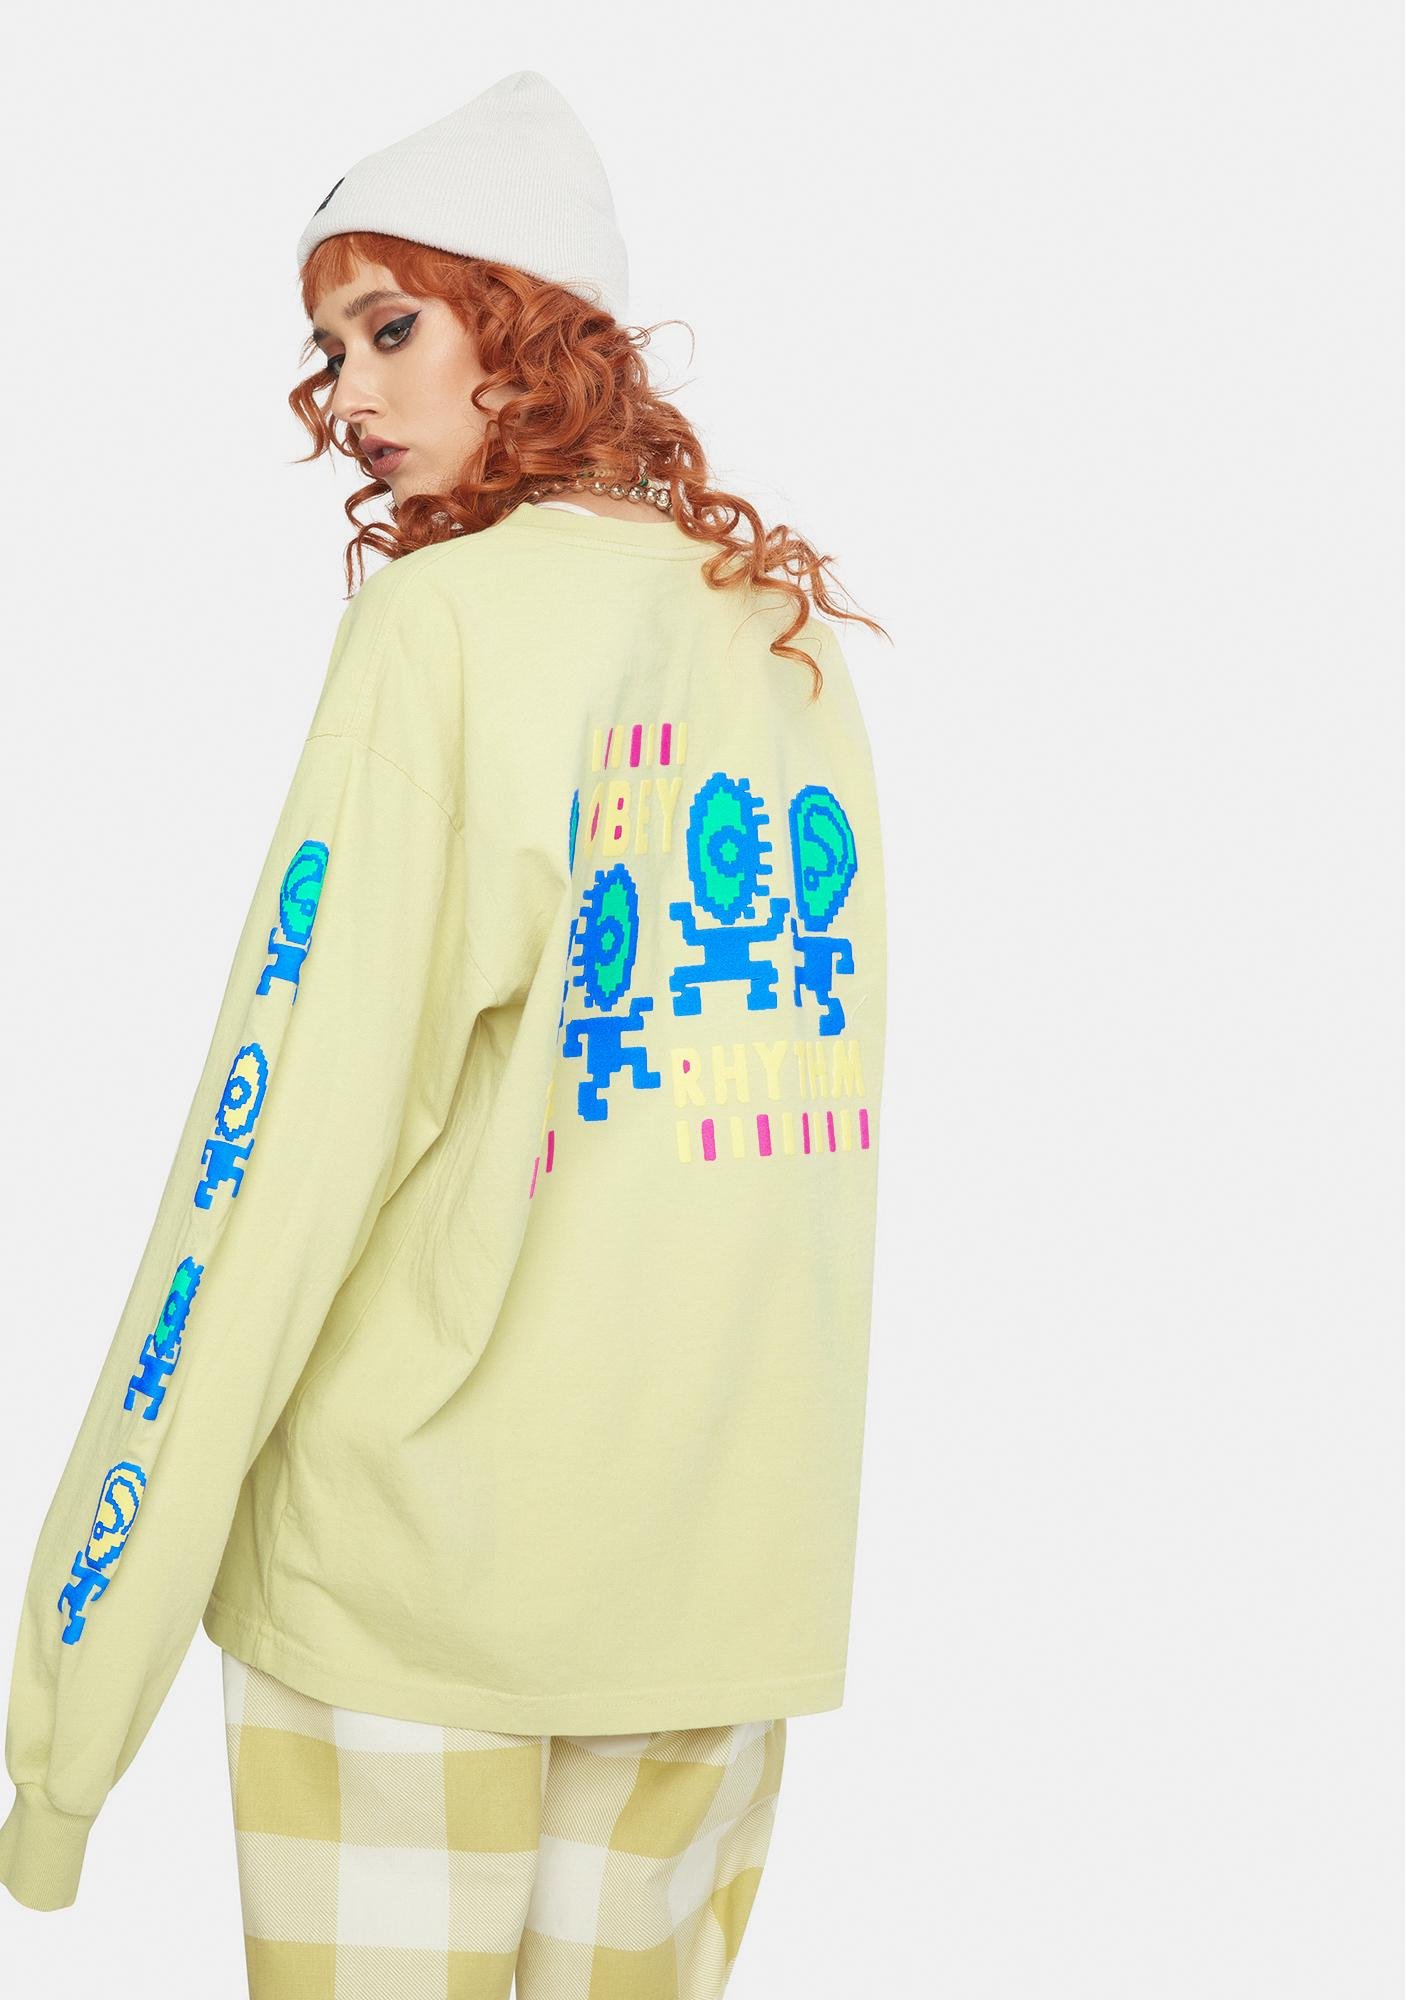 Obey The Rhythm 2 Long Sleeve Graphic Tee